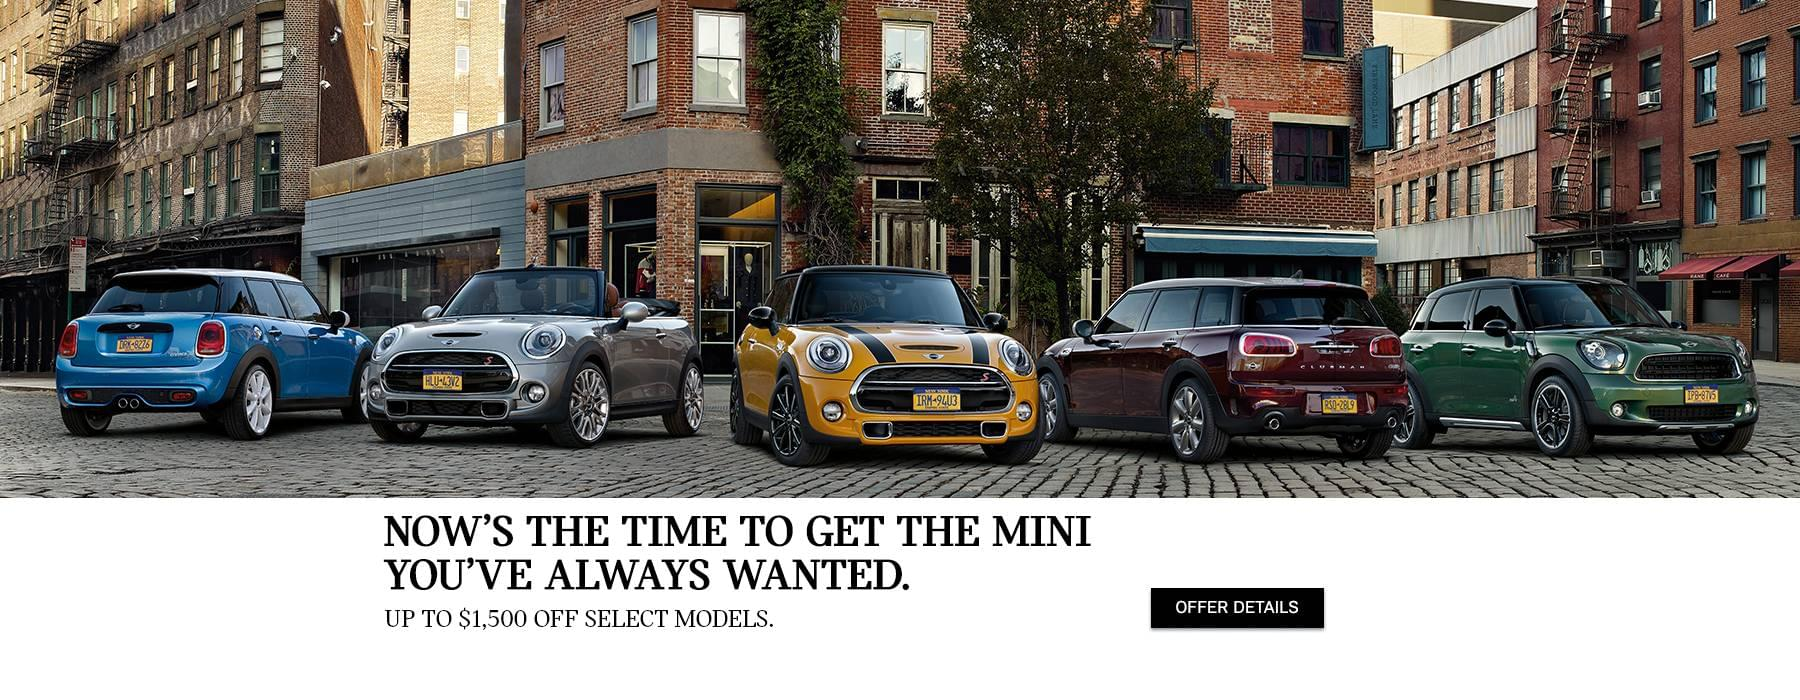 bill jacobs mini mini cooper dealership in naperville il. Black Bedroom Furniture Sets. Home Design Ideas